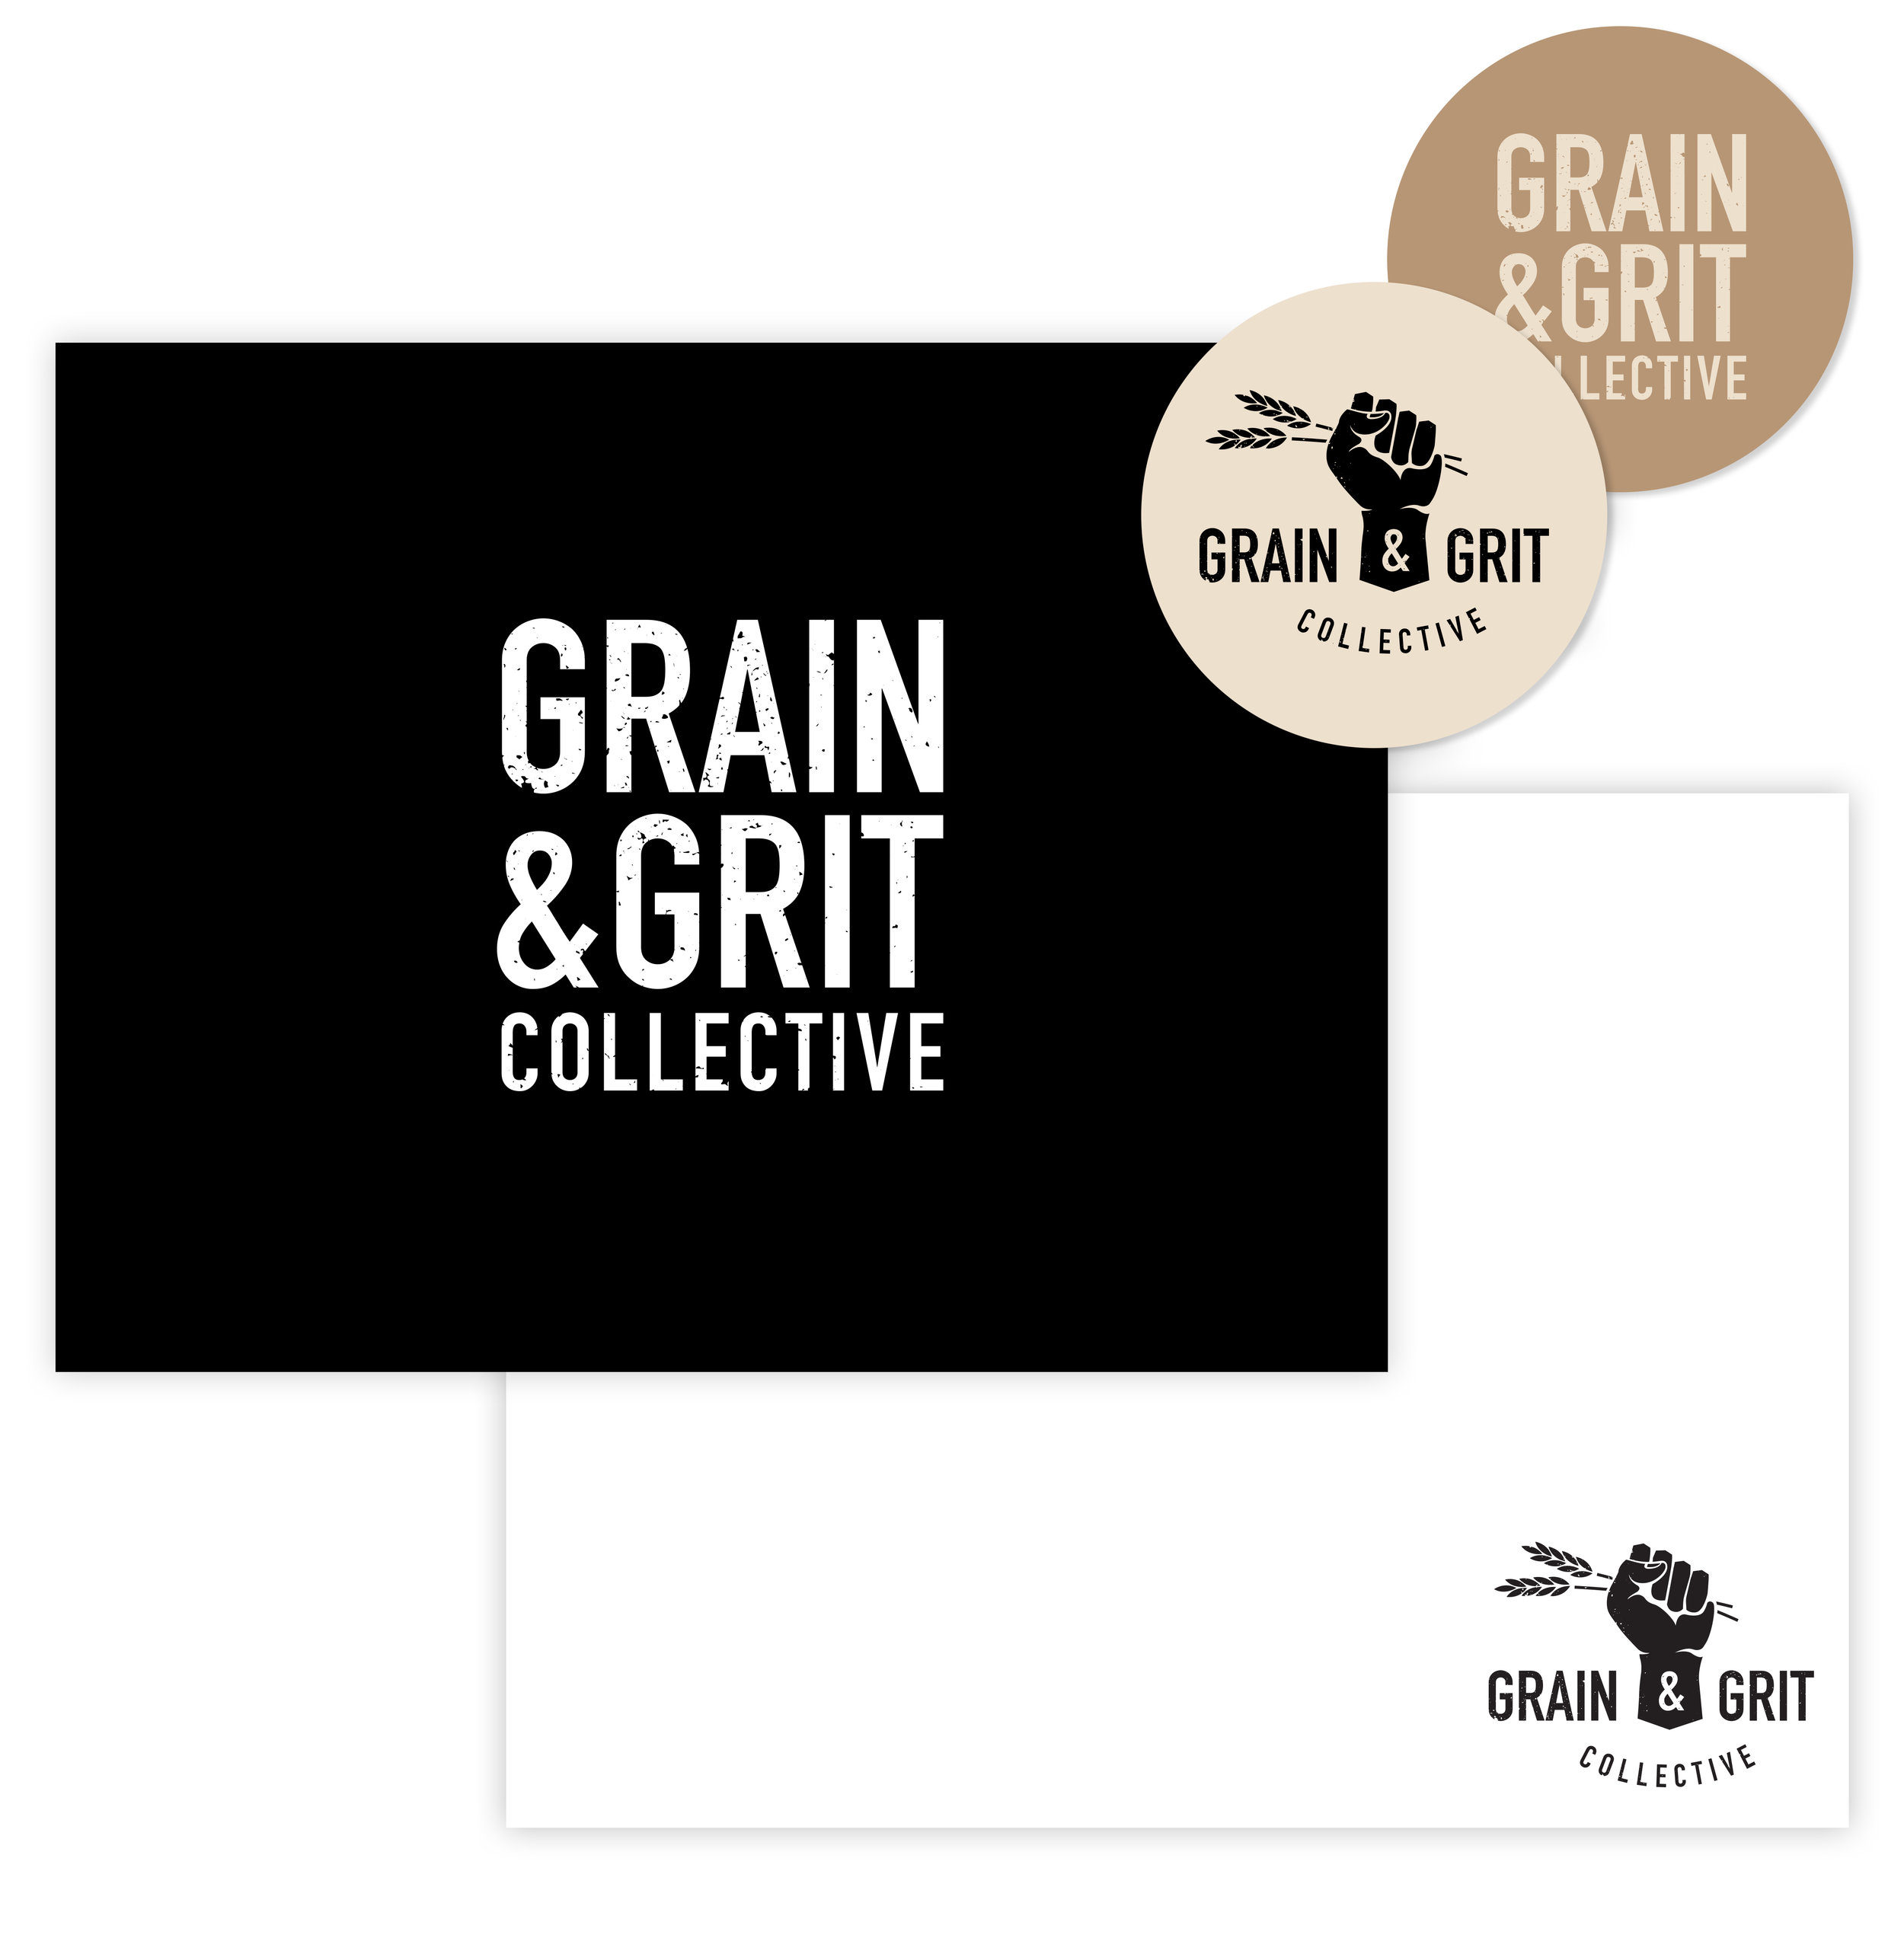 grain&grit_stationery.jpg